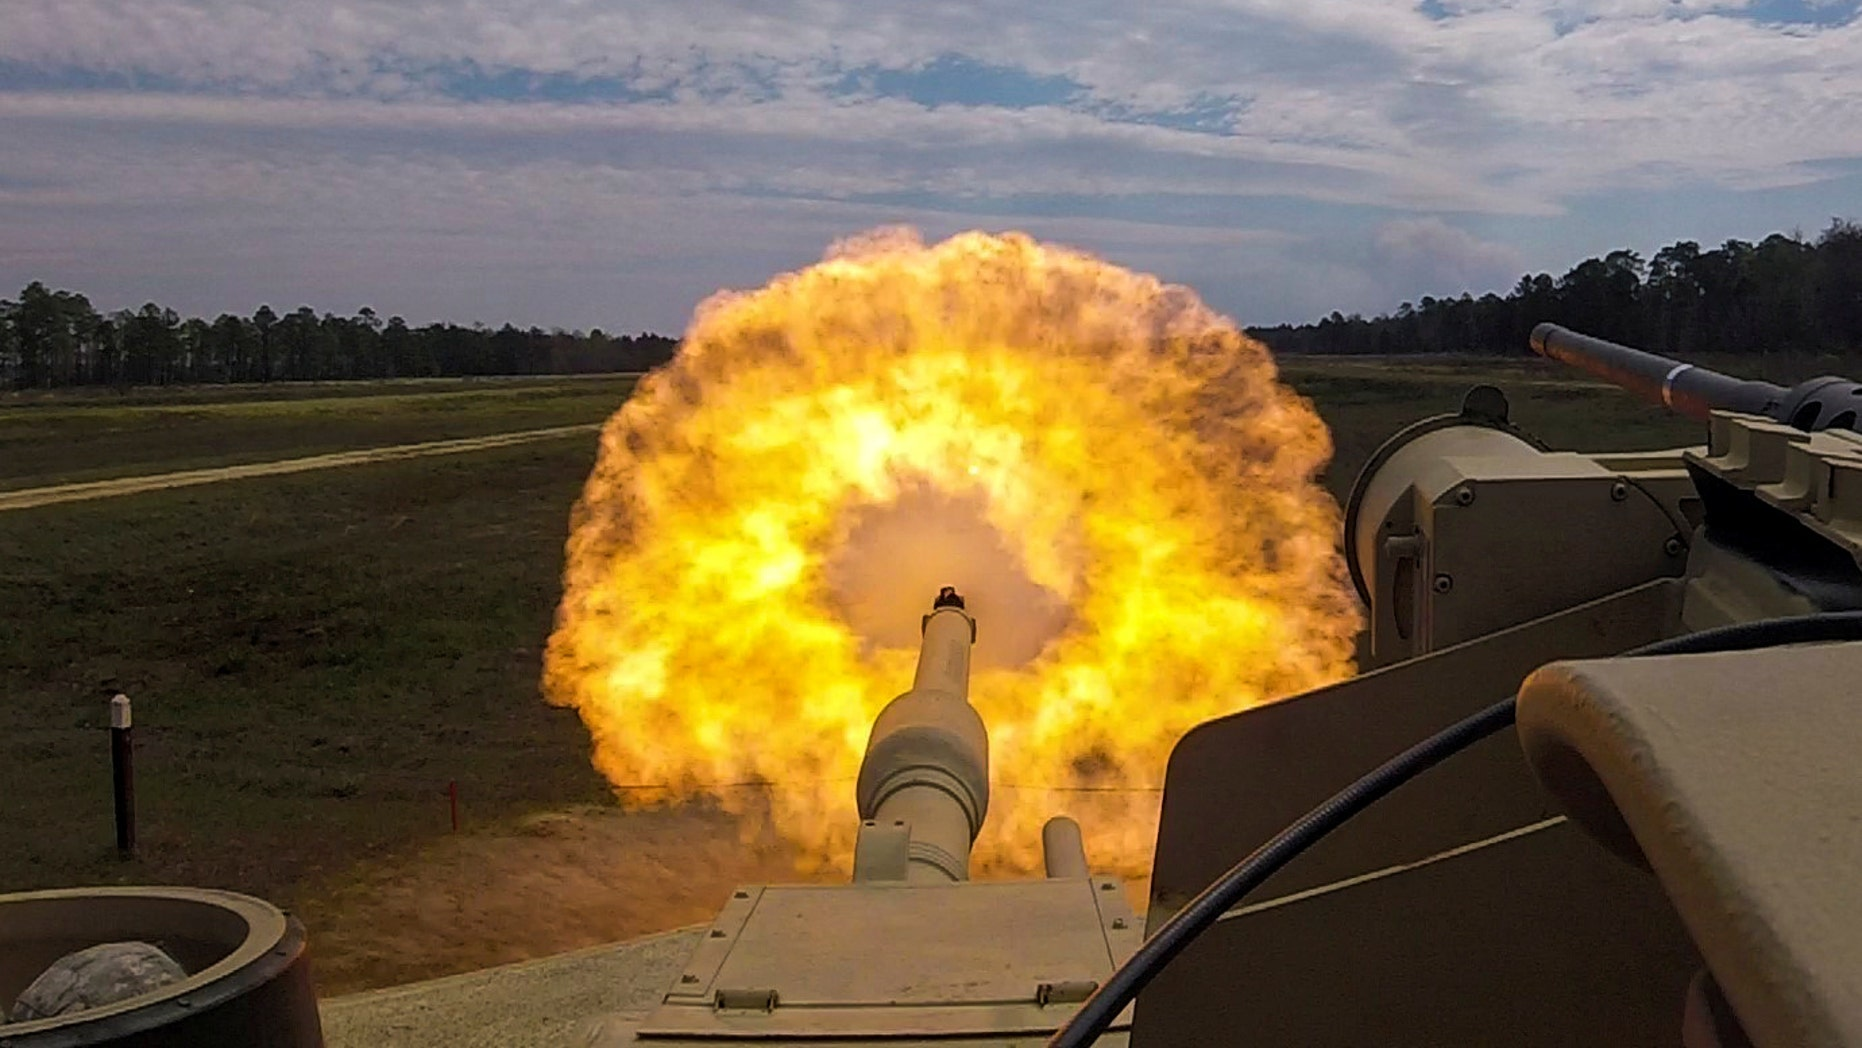 File photo - Troopers with the U.S. Army 2nd Armored Brigade Combat Team, 3rd Infantry Division fire the main gun round at a target during unit gunnery practice with newly acquired M1A1-SA Abrams tanks at Fort Stewart, Georgia, U.S. March 29, 2018. Picture taken March 29, 2018. (U.S. Army/Handout via REUTERS)